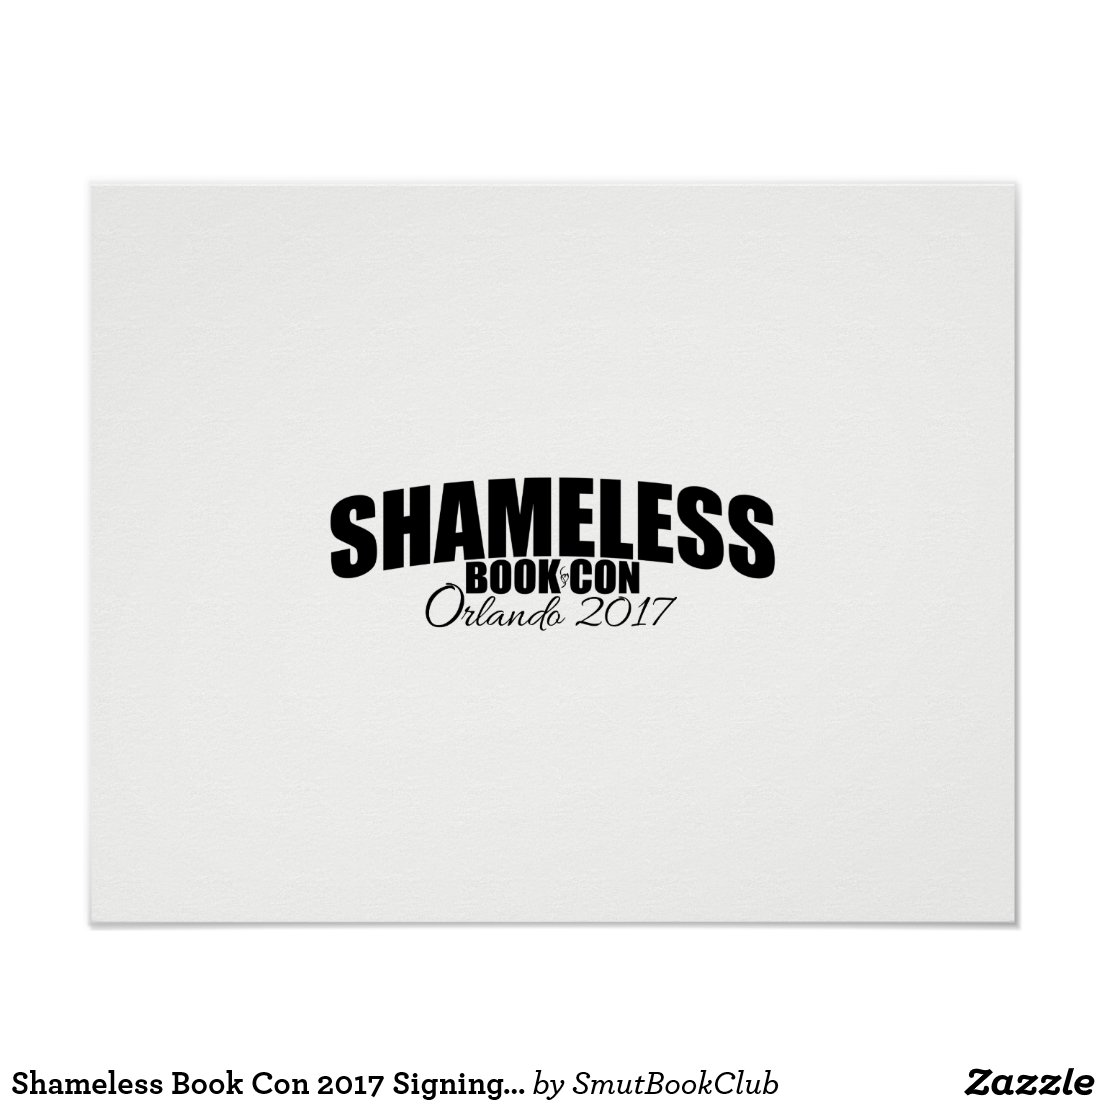 Shameless Book Con 2017 All The Things You Need To Take